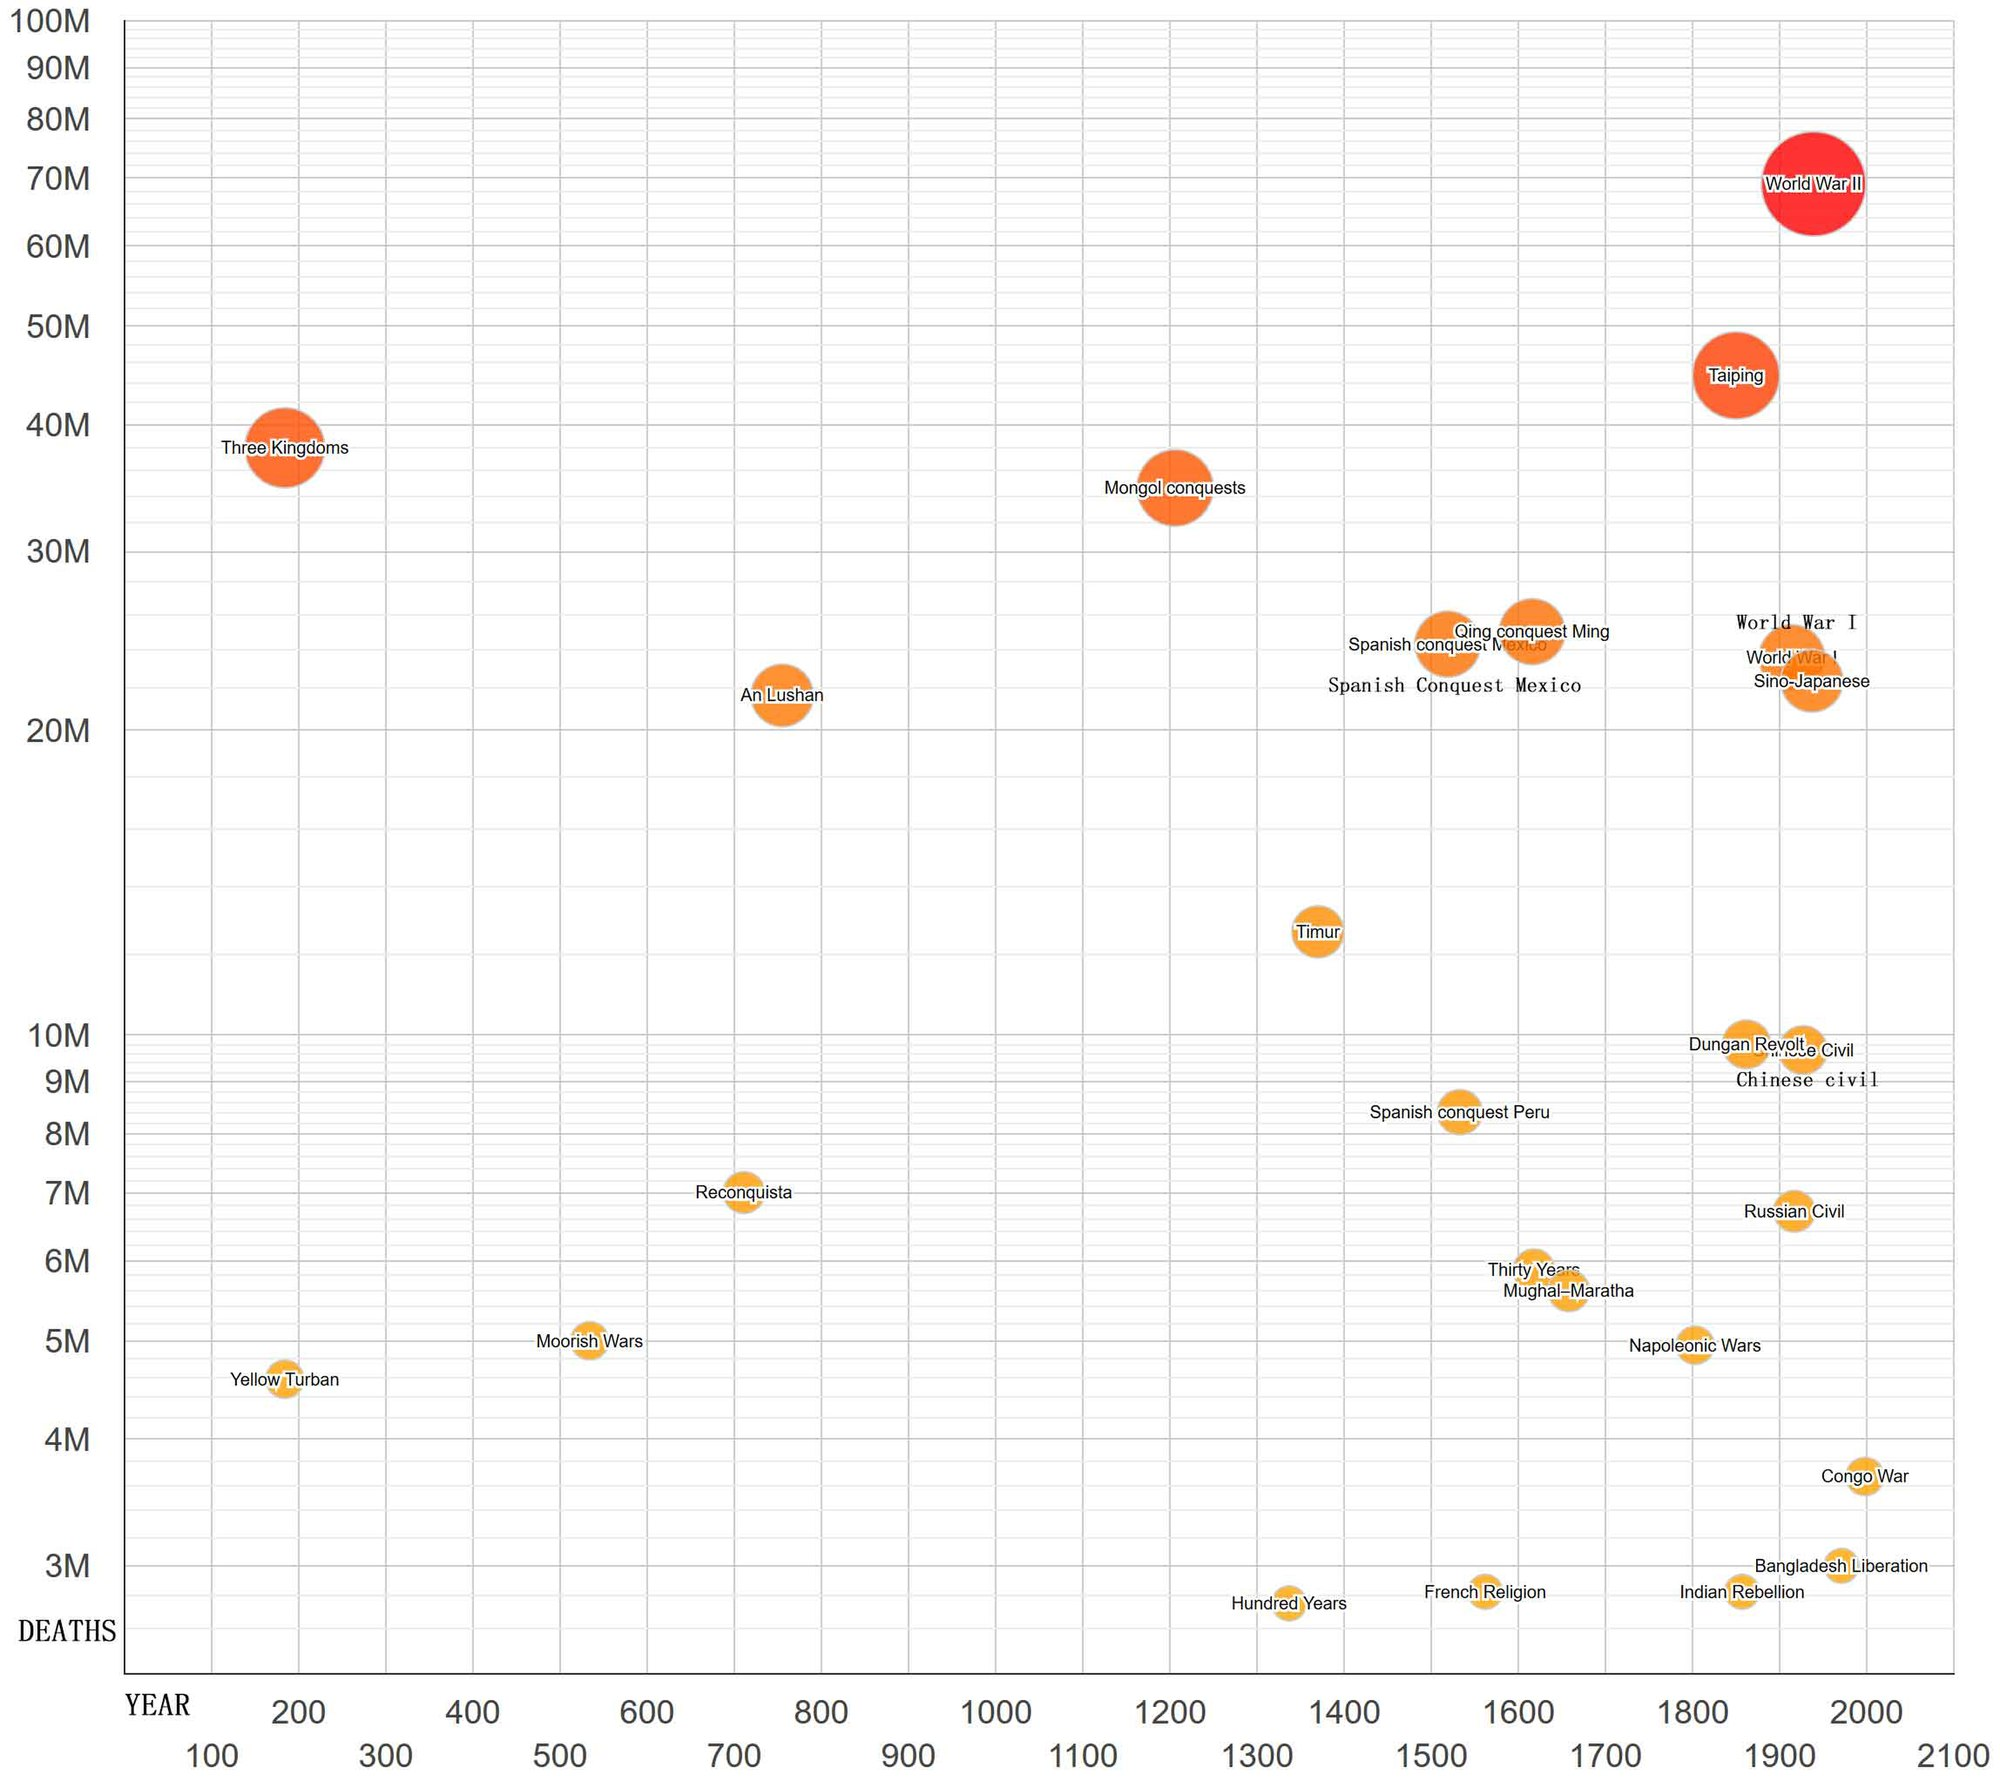 Bubble chart of wars over 100 million deaths. Wars by Death Toll Chart.jpg